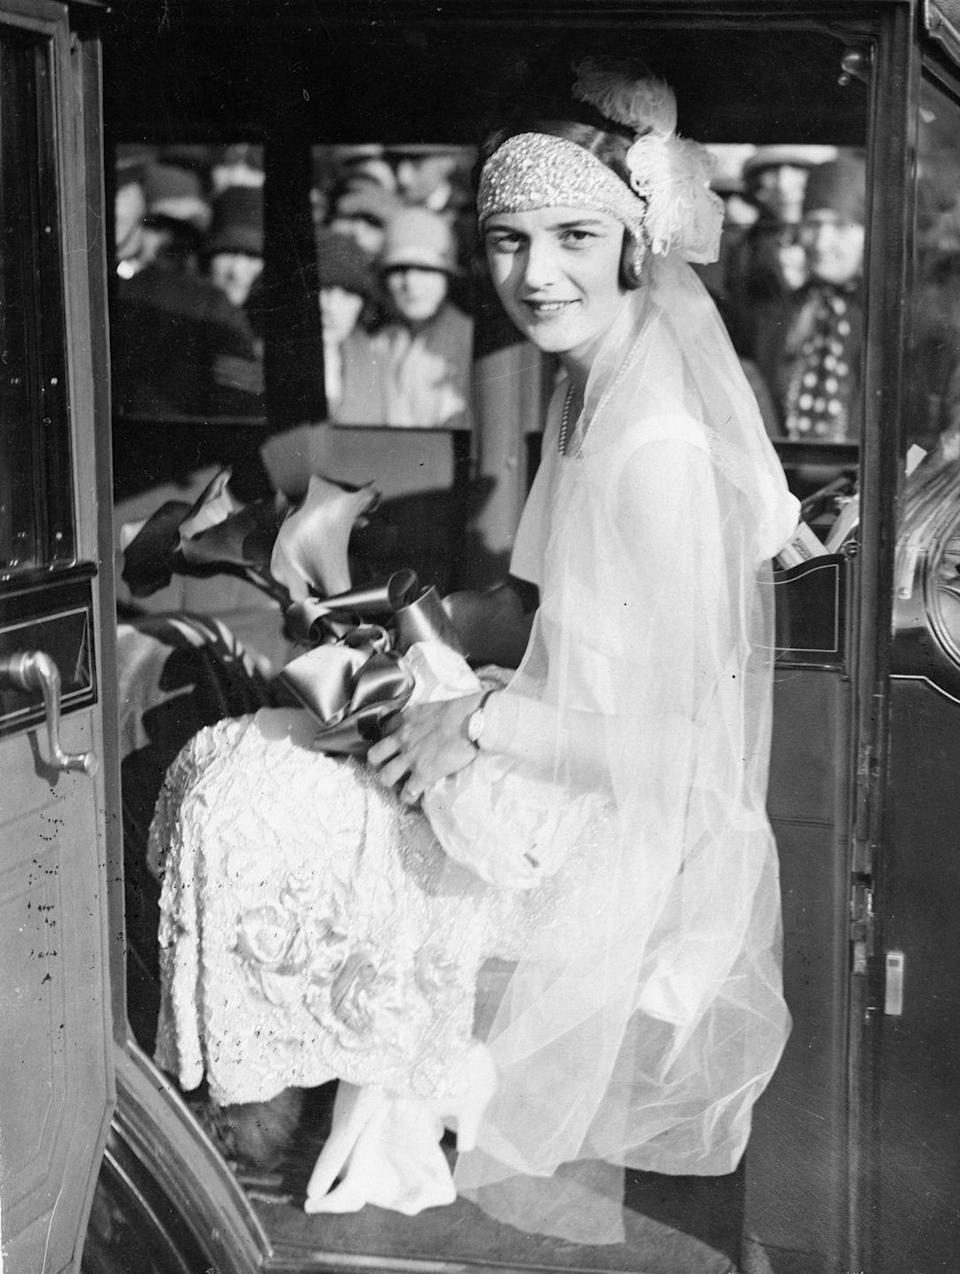 <p>Famed English tennis player Eileen Bennett wed racehorse trainer Marcus Marsh on September 28, 1936. She often wore headbands on the court and chose to walk down the aisle in a headpiece and long veil, which were in fashion at the time. </p>